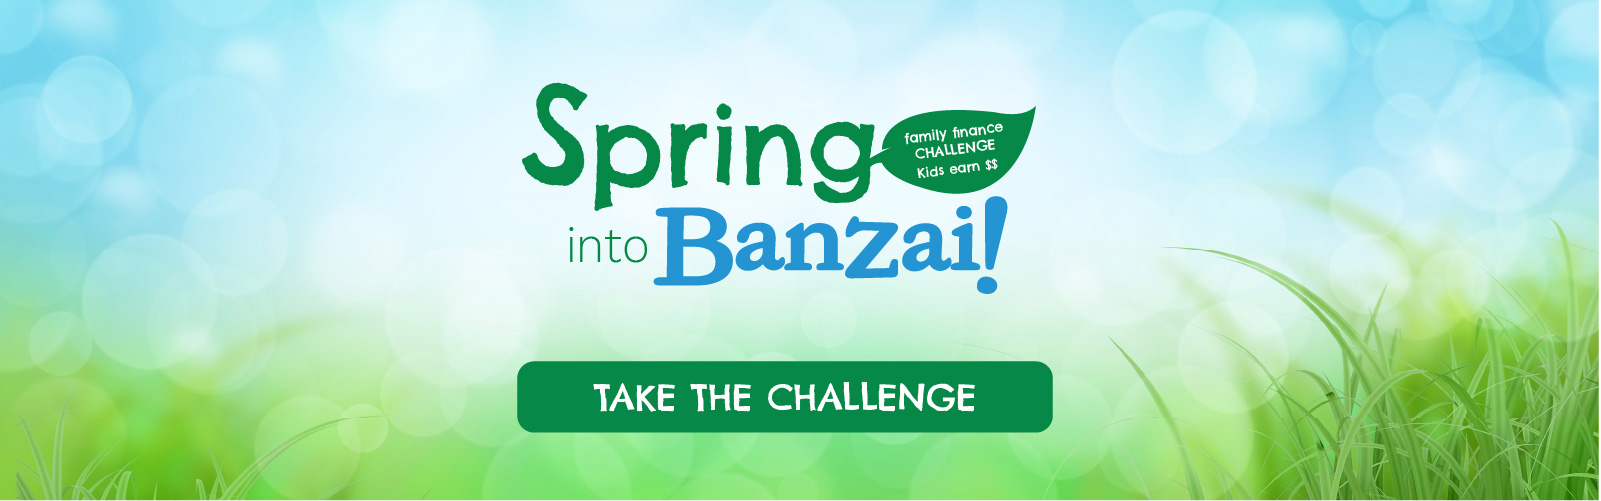 Spring into Banzai Family Finance Challenge. Kids Earn $$. Take the Challenge.